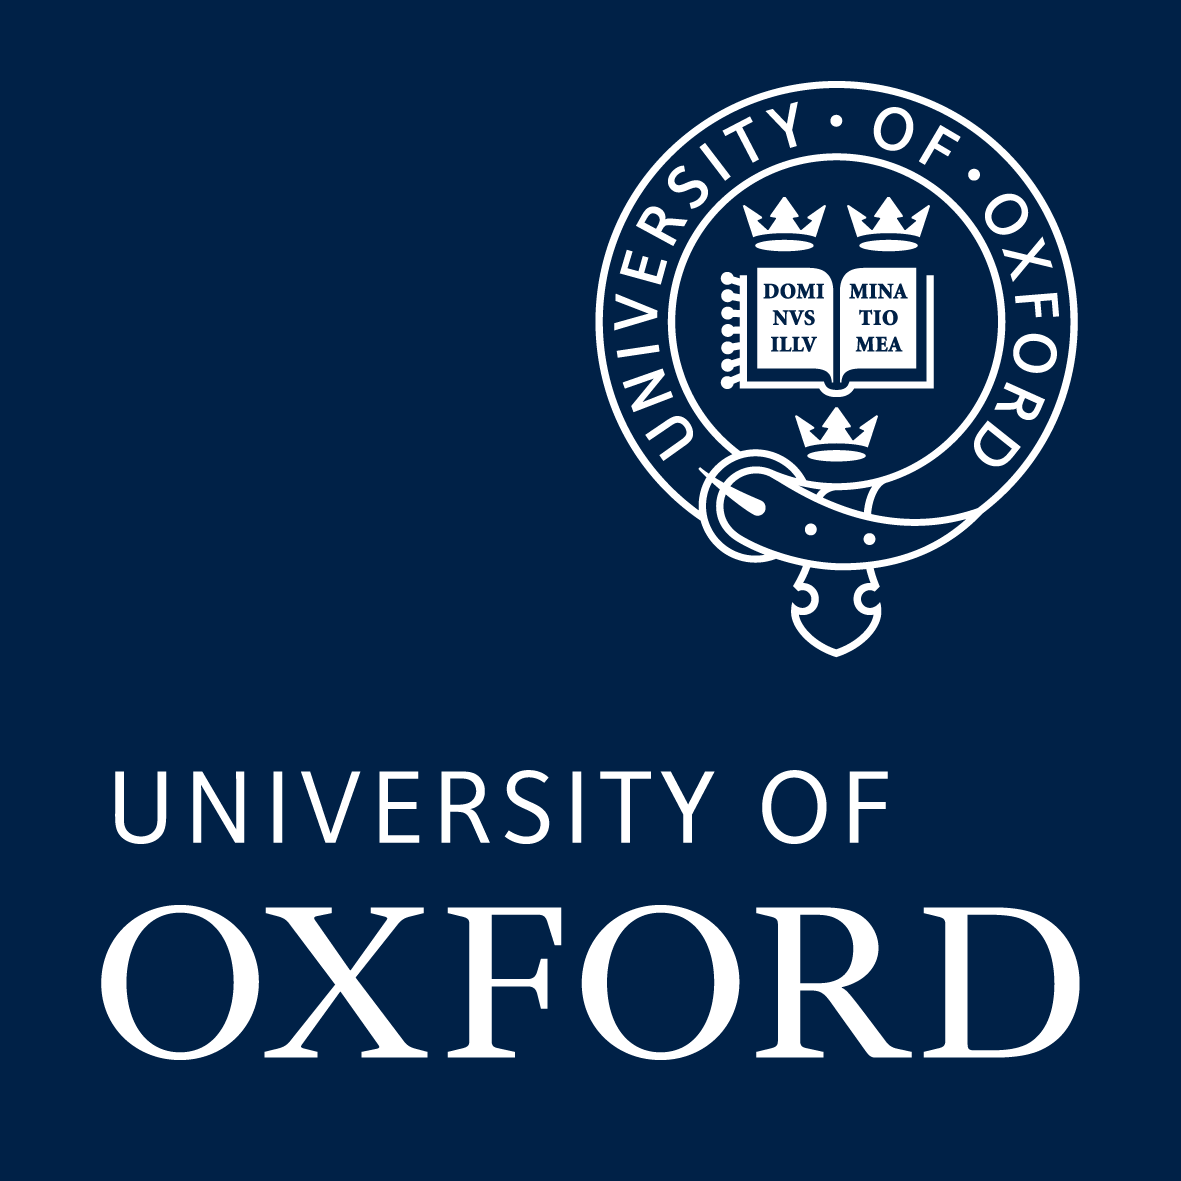 Logo University of Oxford, Saïd Business School